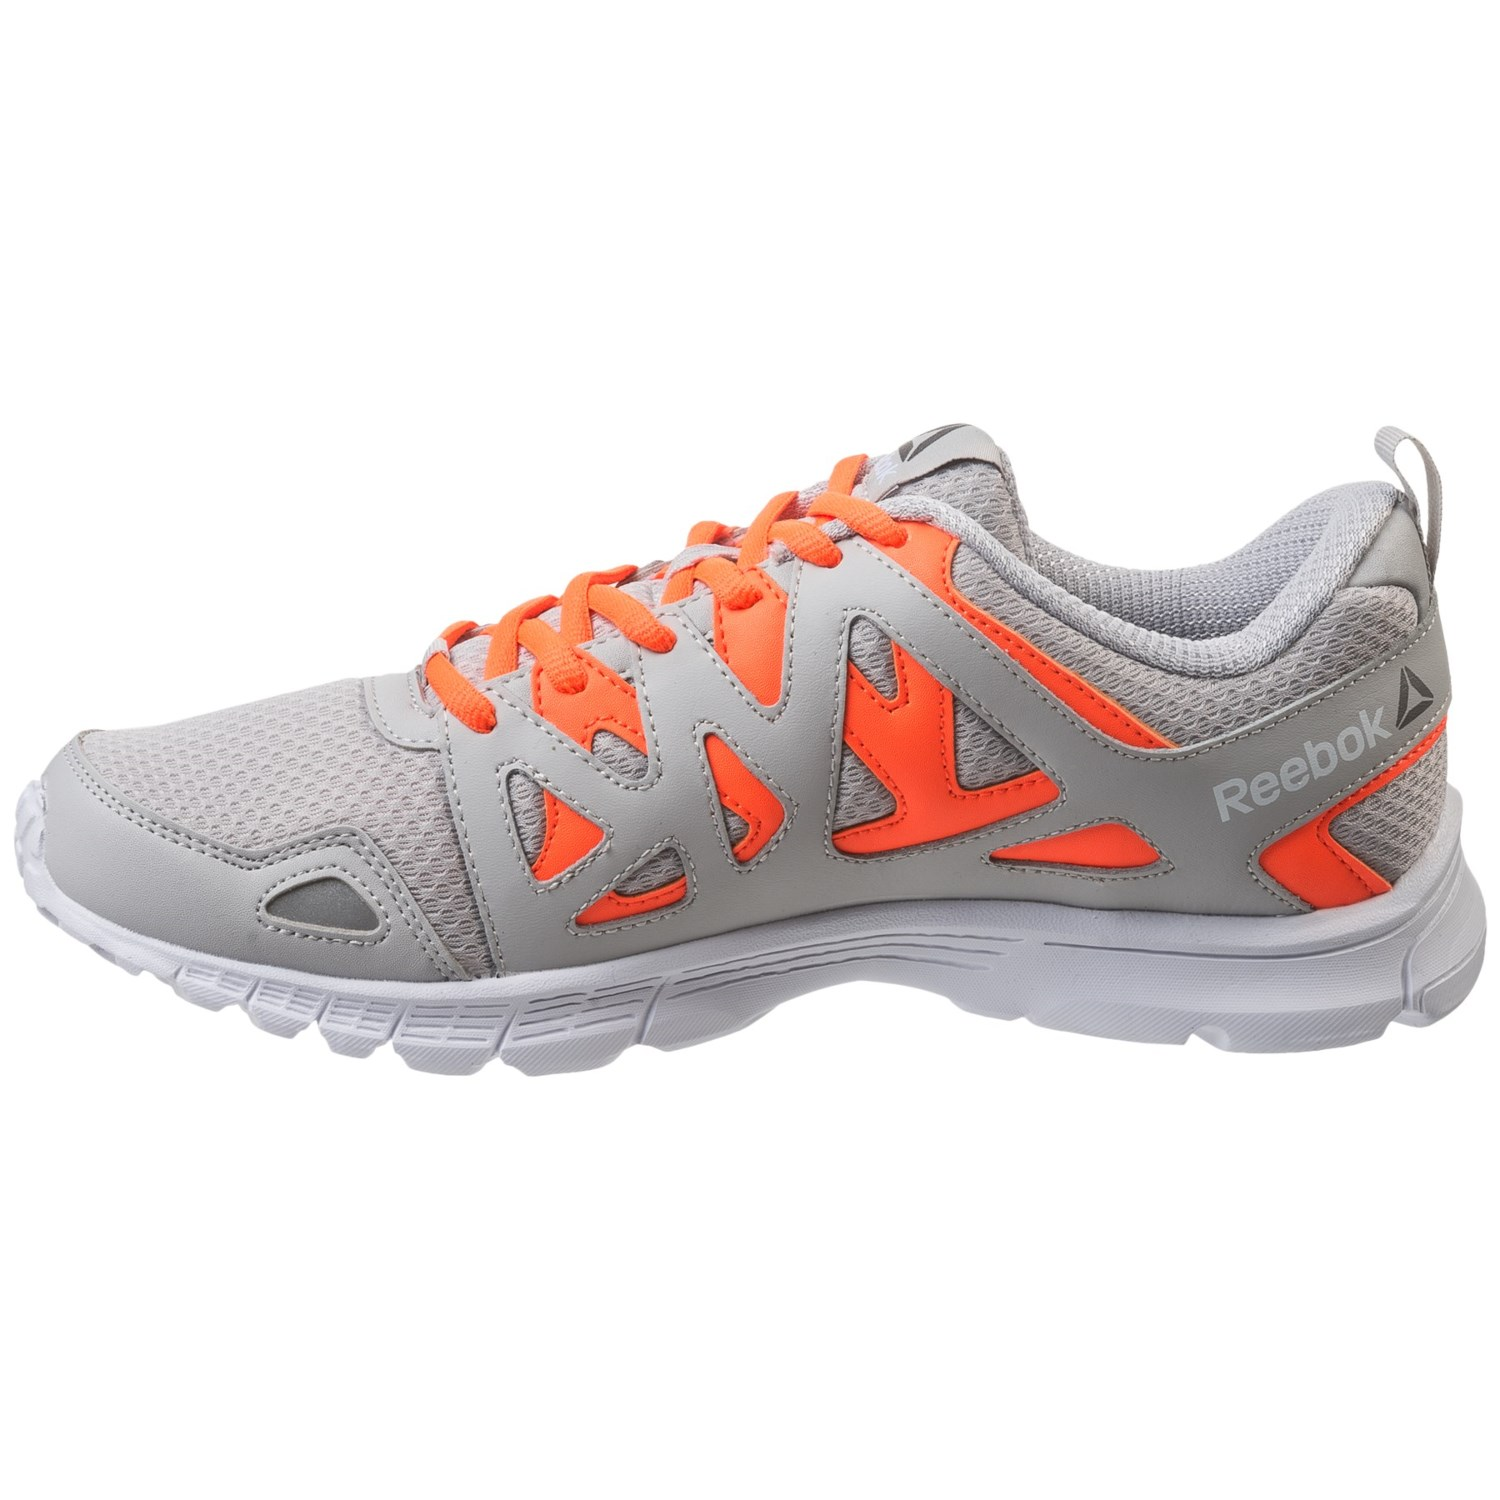 reebok mens running shoes. click thumbnails to enlarge reebok mens running shoes